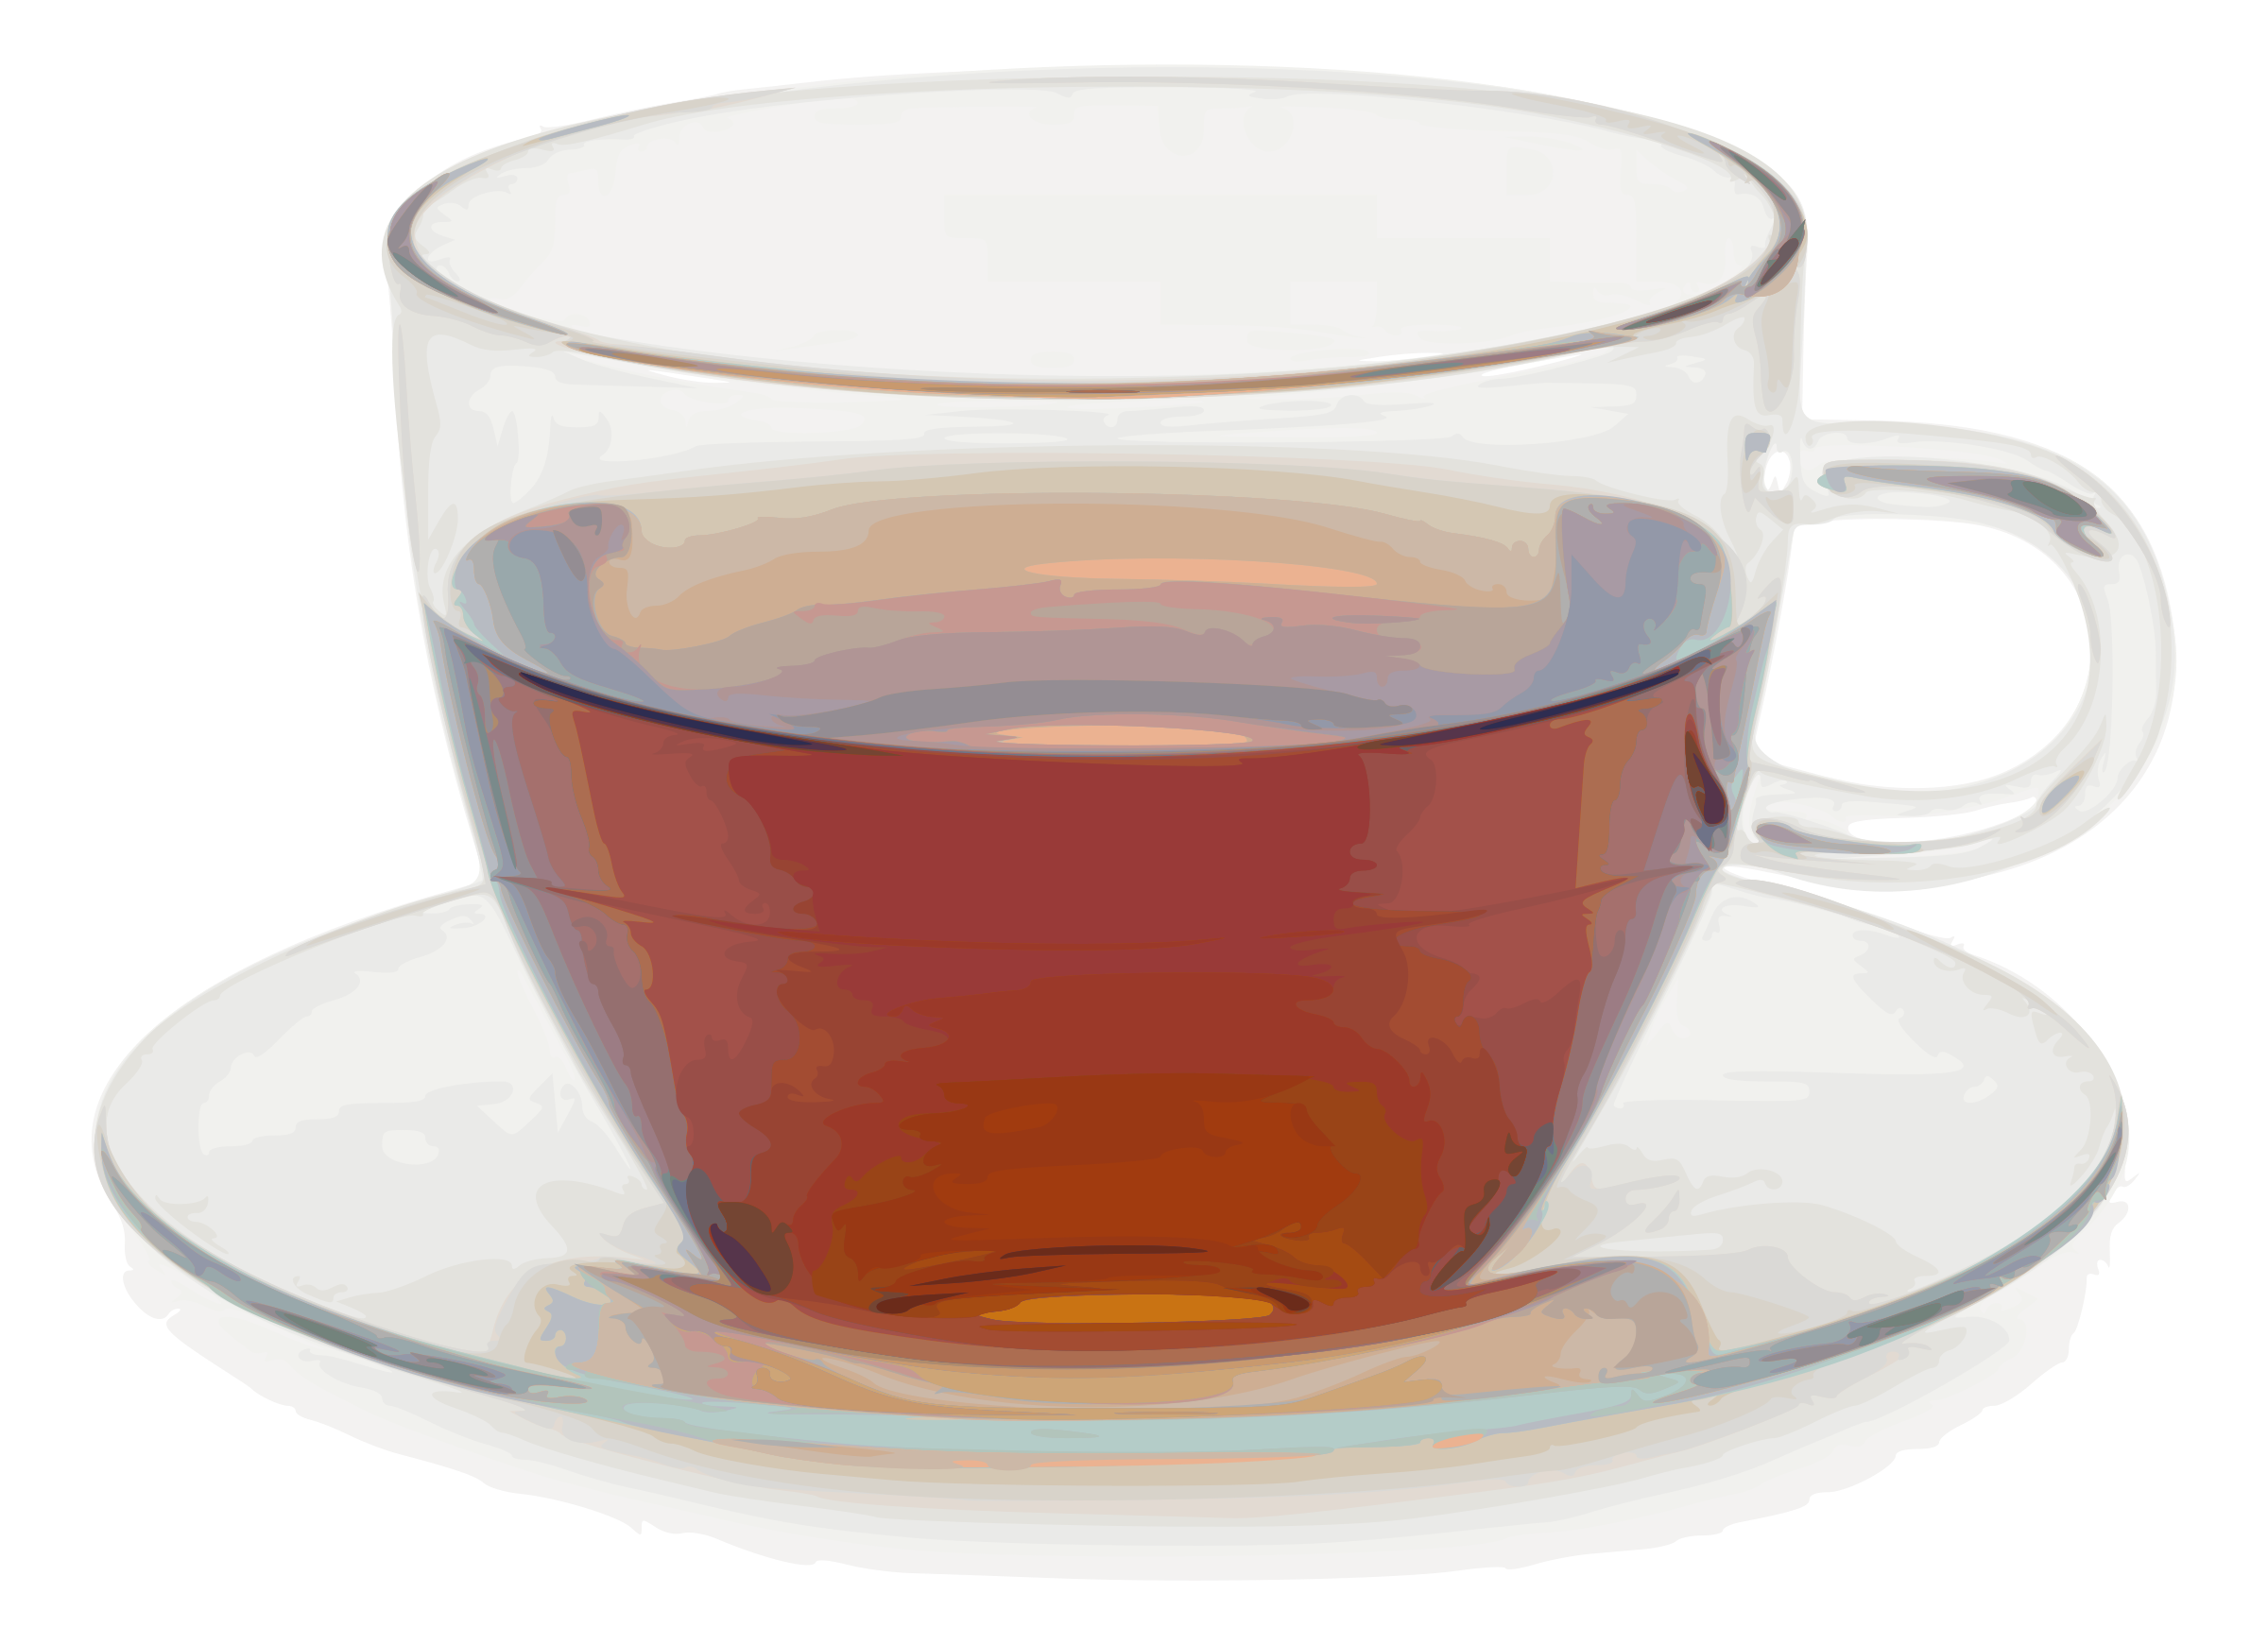 Cup PNG Transparent image - Cup PNG